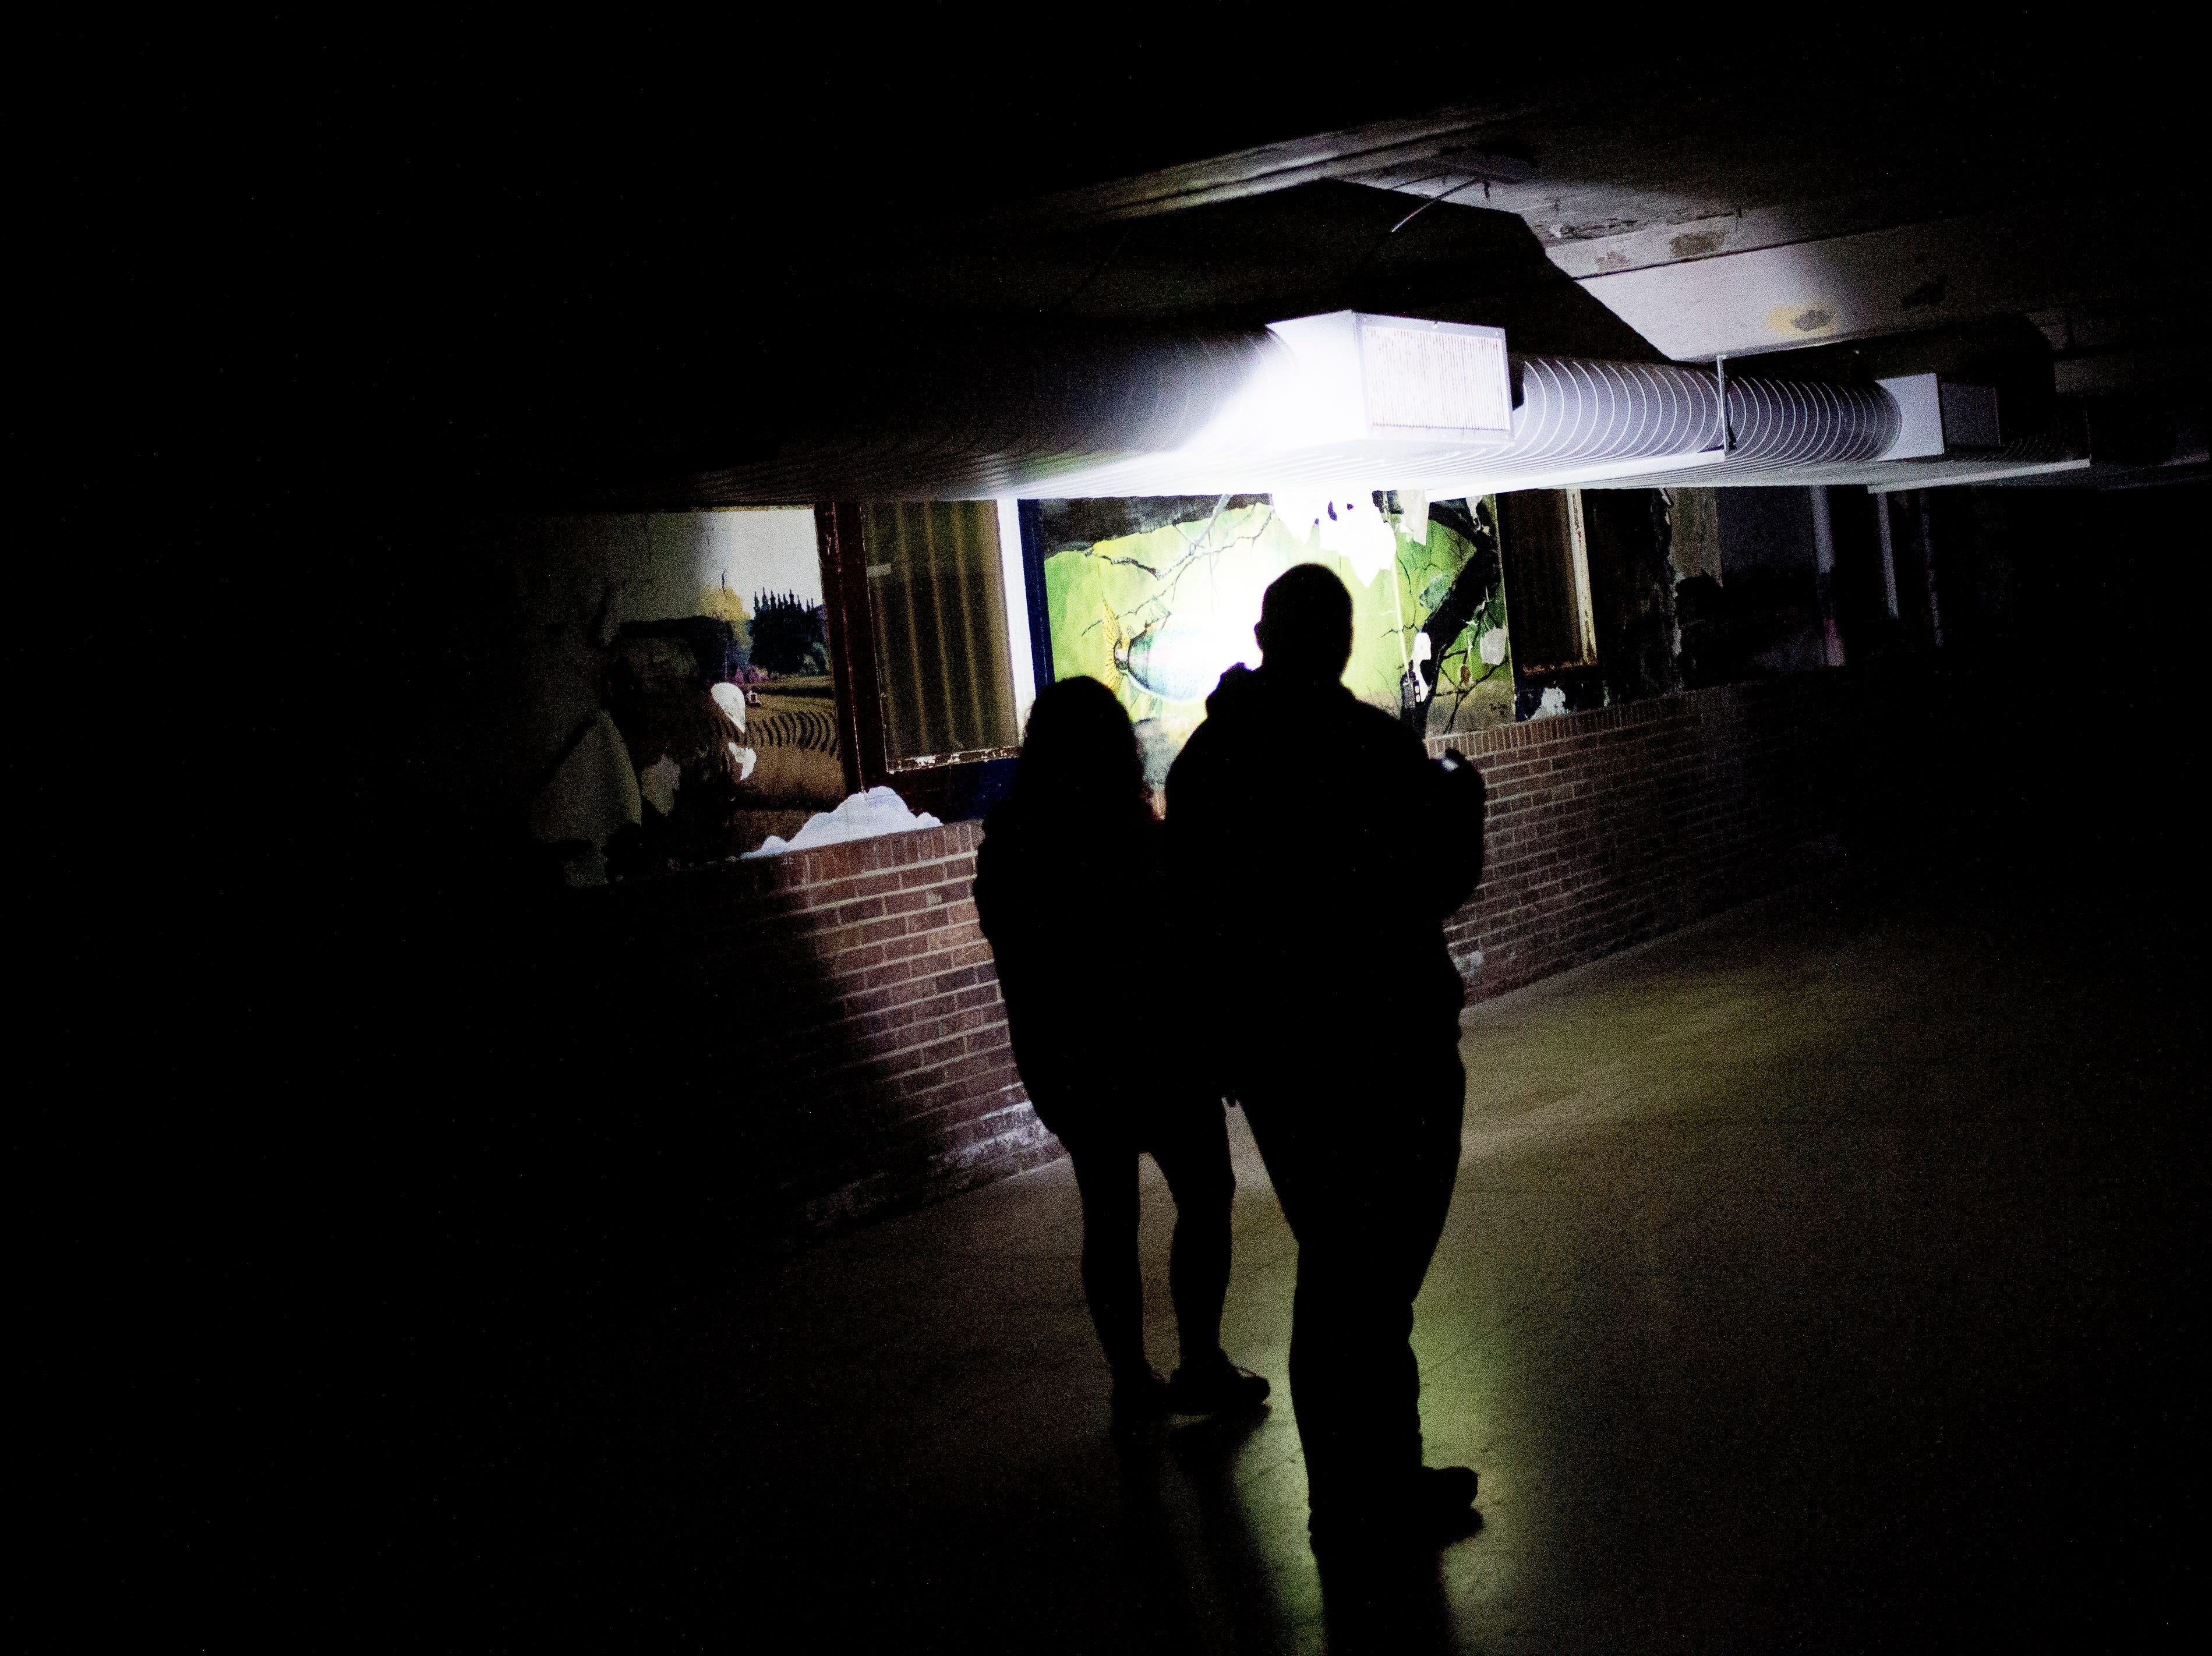 Visitors tour the cafeteria during a paranormal flashlight tour of Brushy Mountain State Penitentiary in Petros, Tennessee on Tuesday, October 16, 2018.